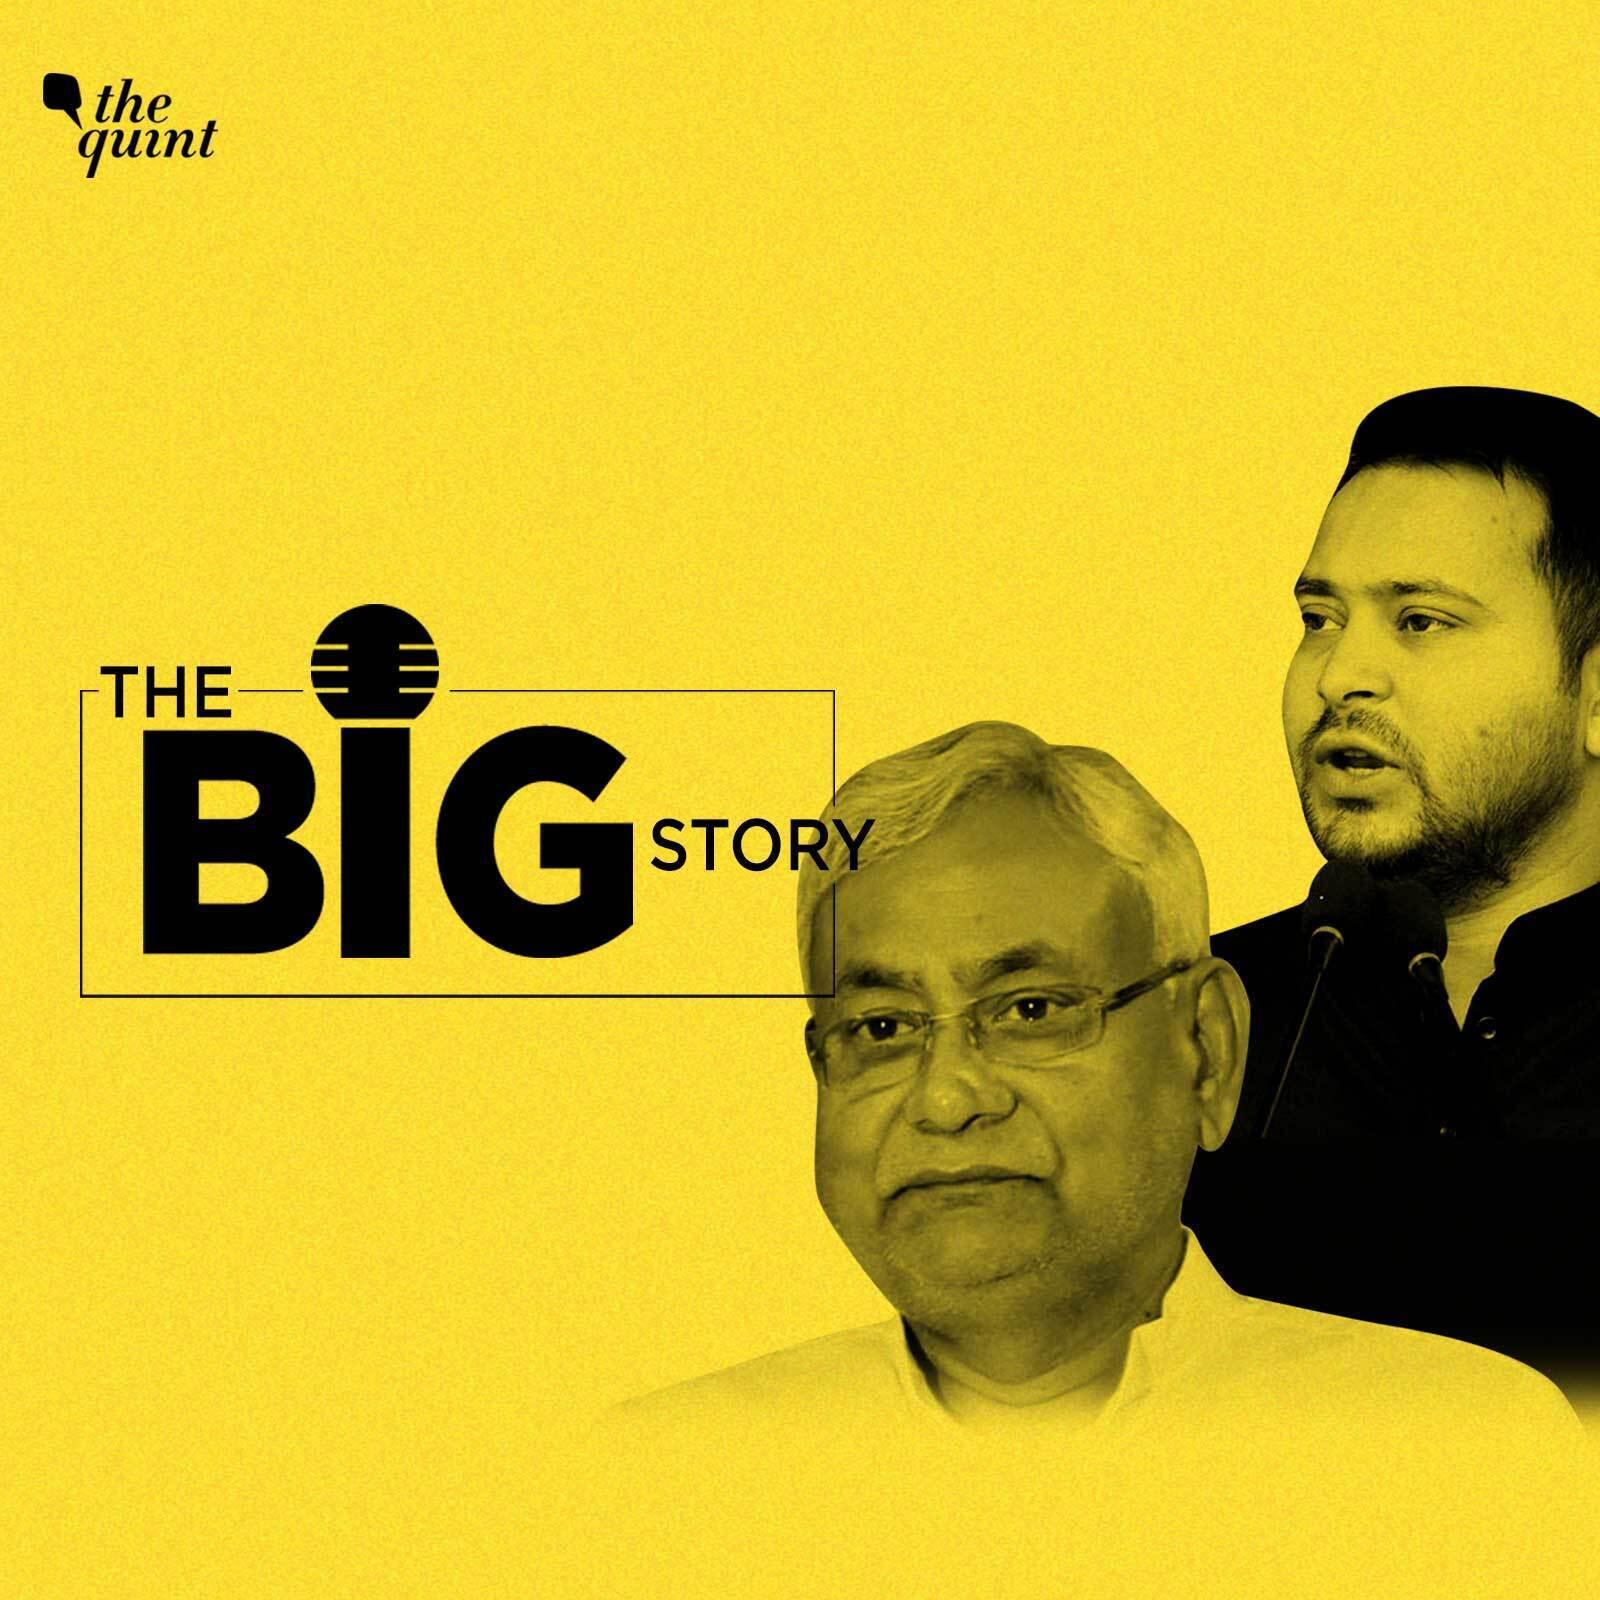 540: Can Nitish Kumar Return as Bihar CM Riding on Modi's Popularity?